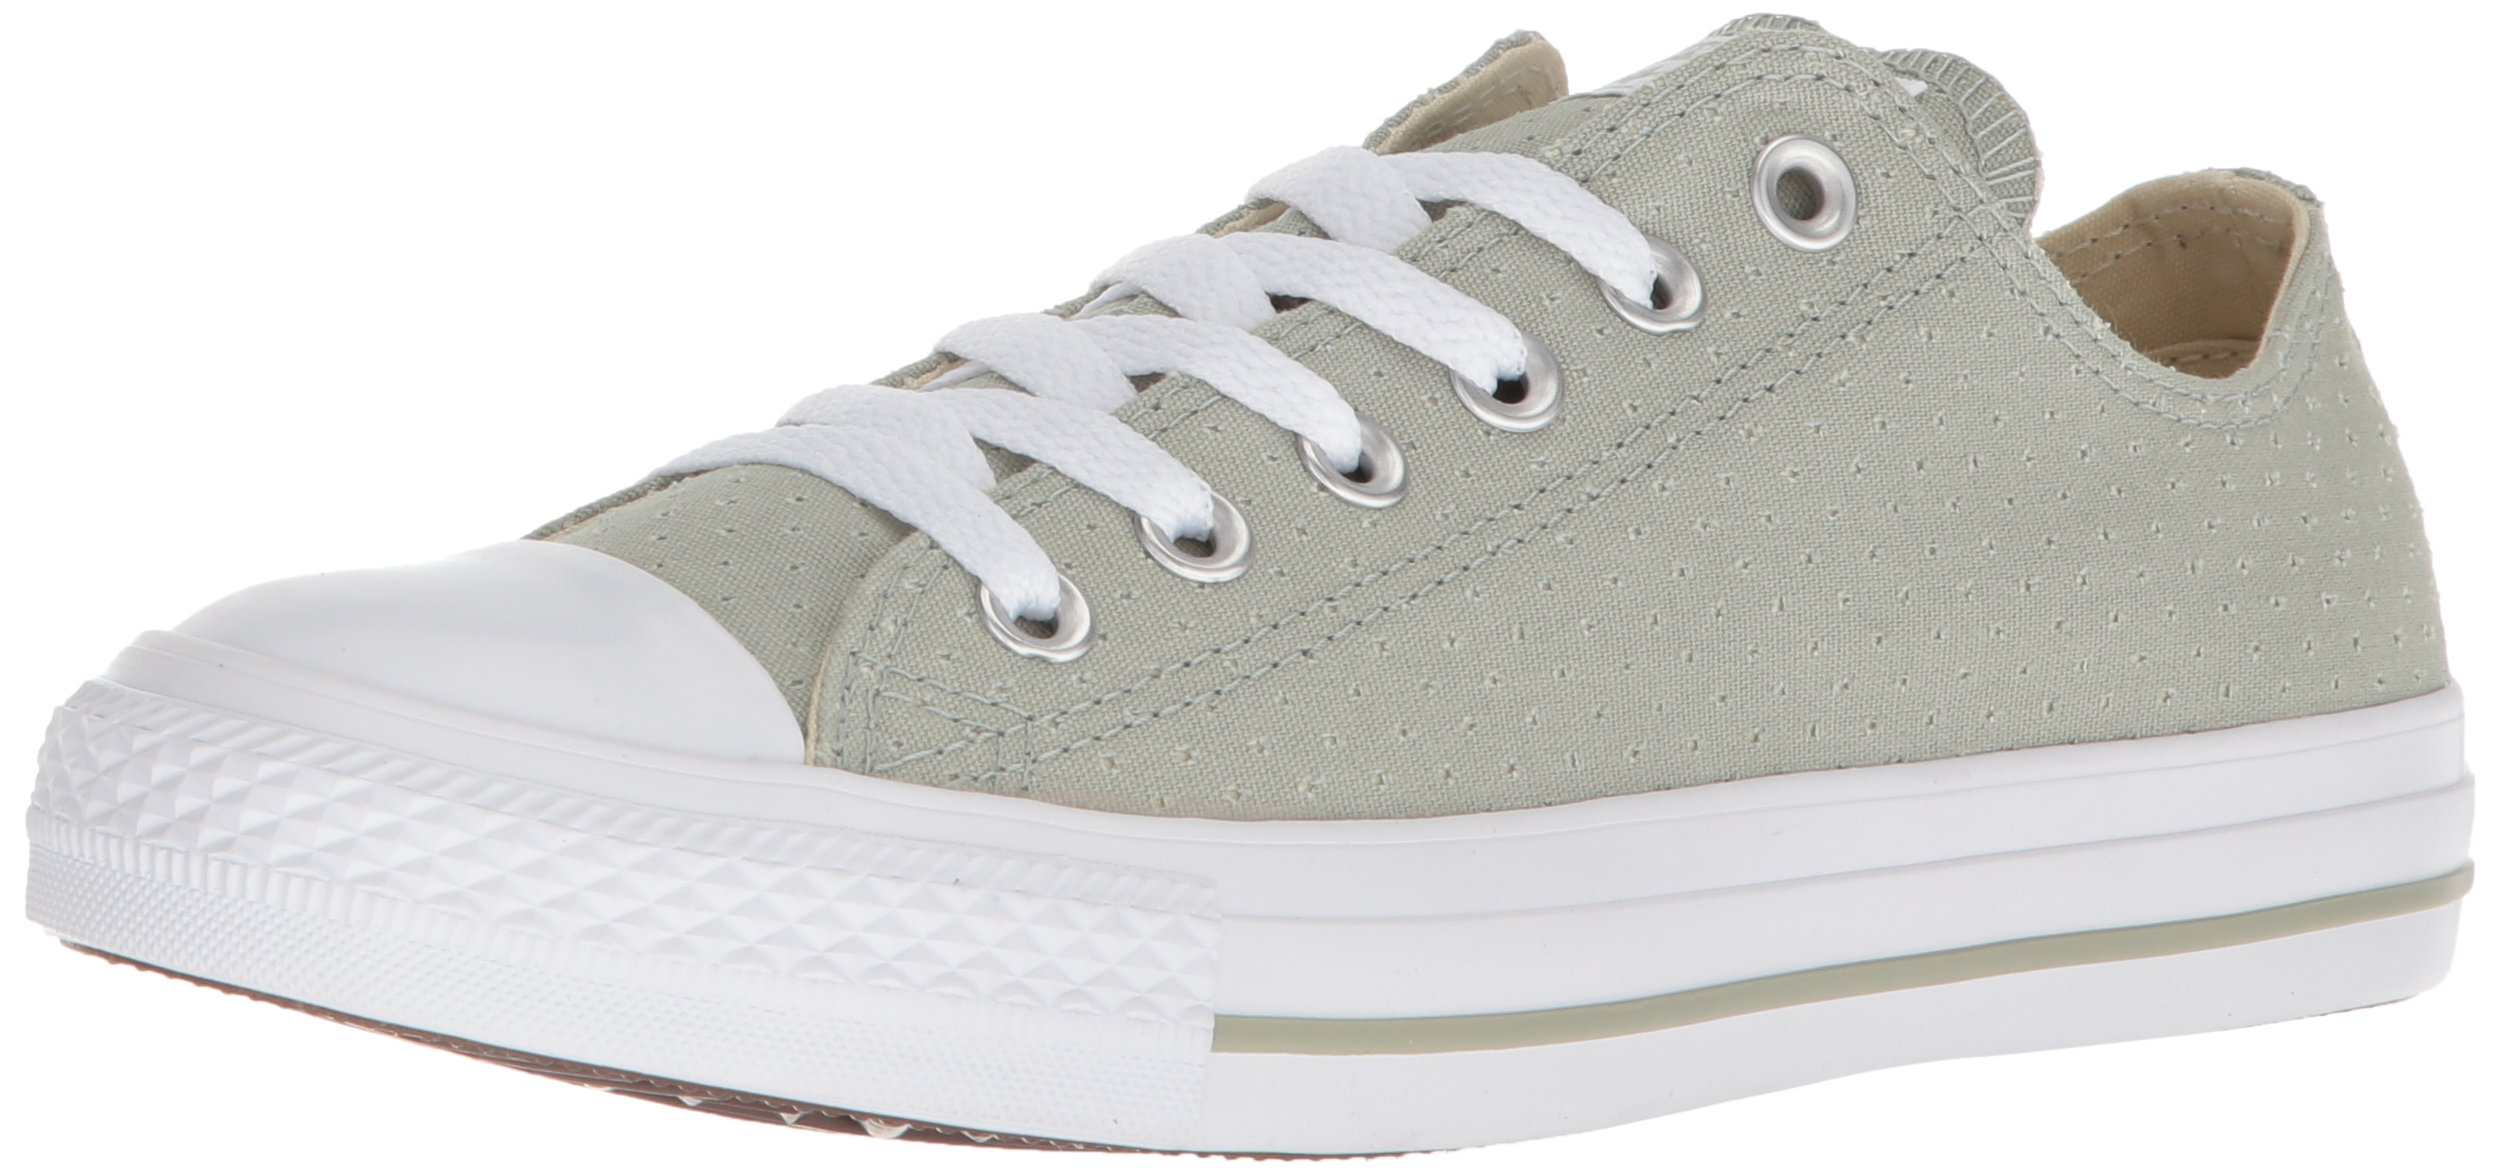 ad9da4e771d4 Galleon - Converse Women s Chuck Taylor All Star Perforated Canvas Low Top  Sneaker